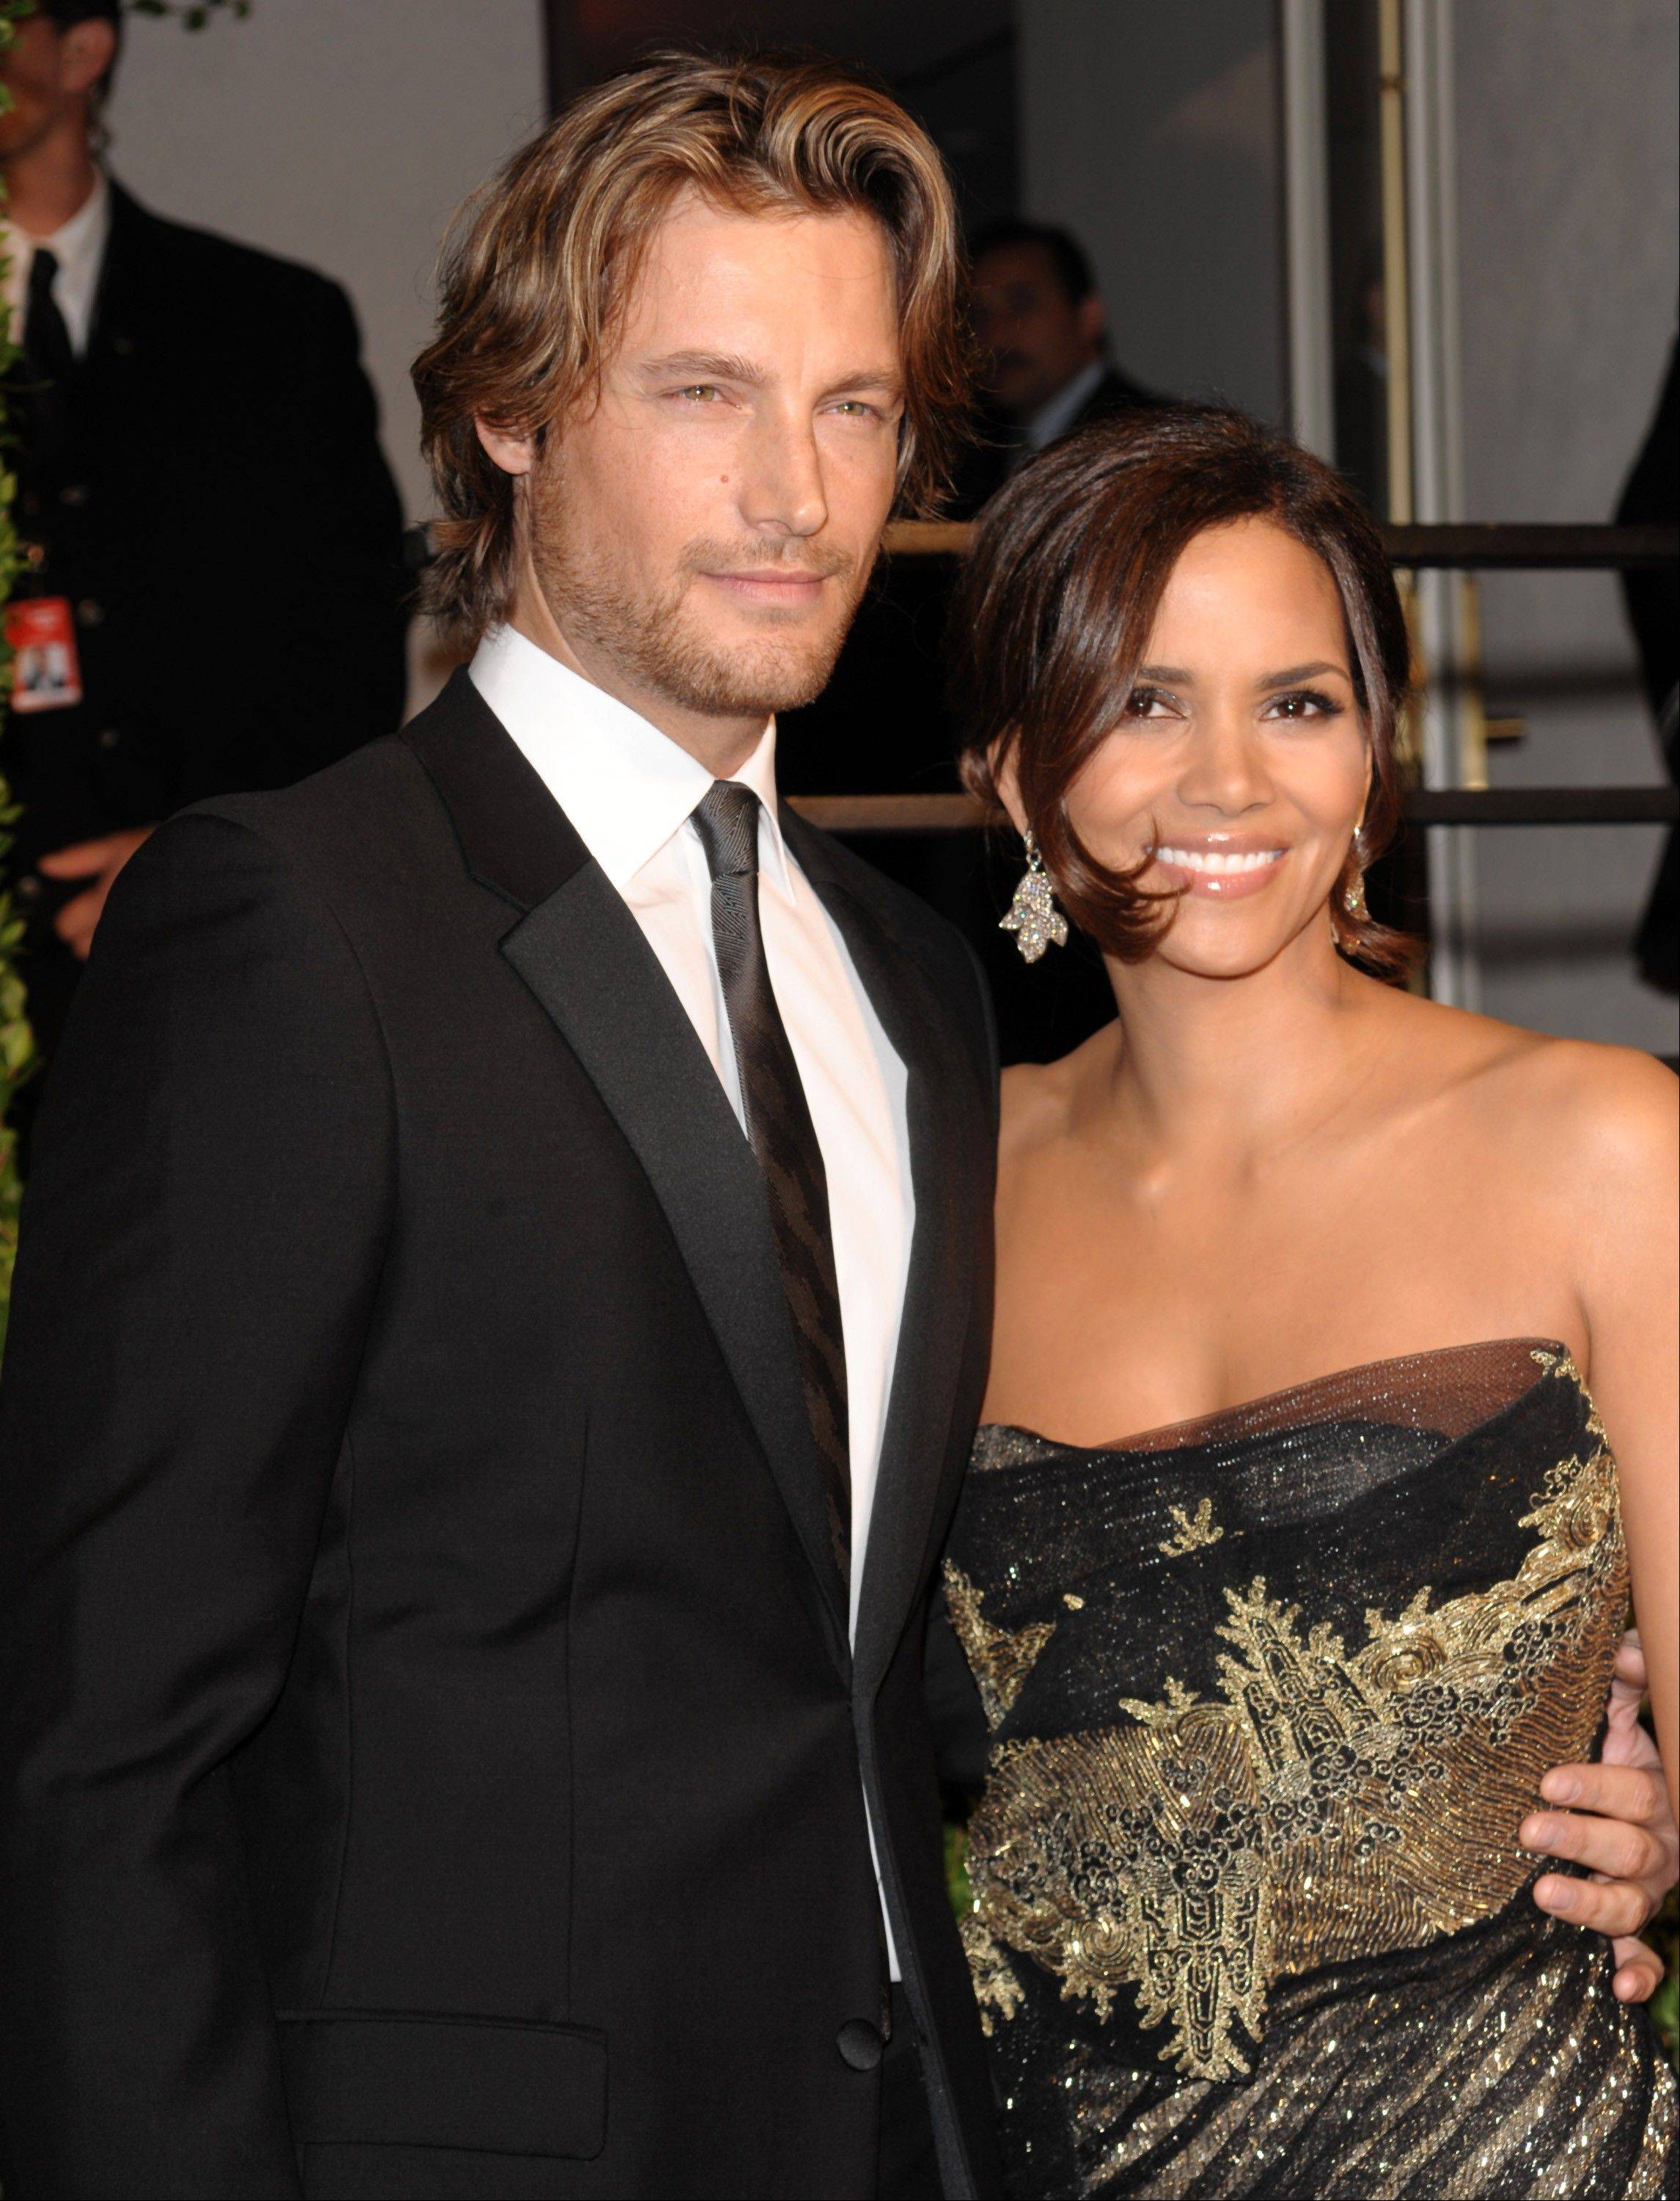 Gabriel Aubry and Halle Berry have settled court issues that arose after a Thanksgiving Day fight at the actress' home.